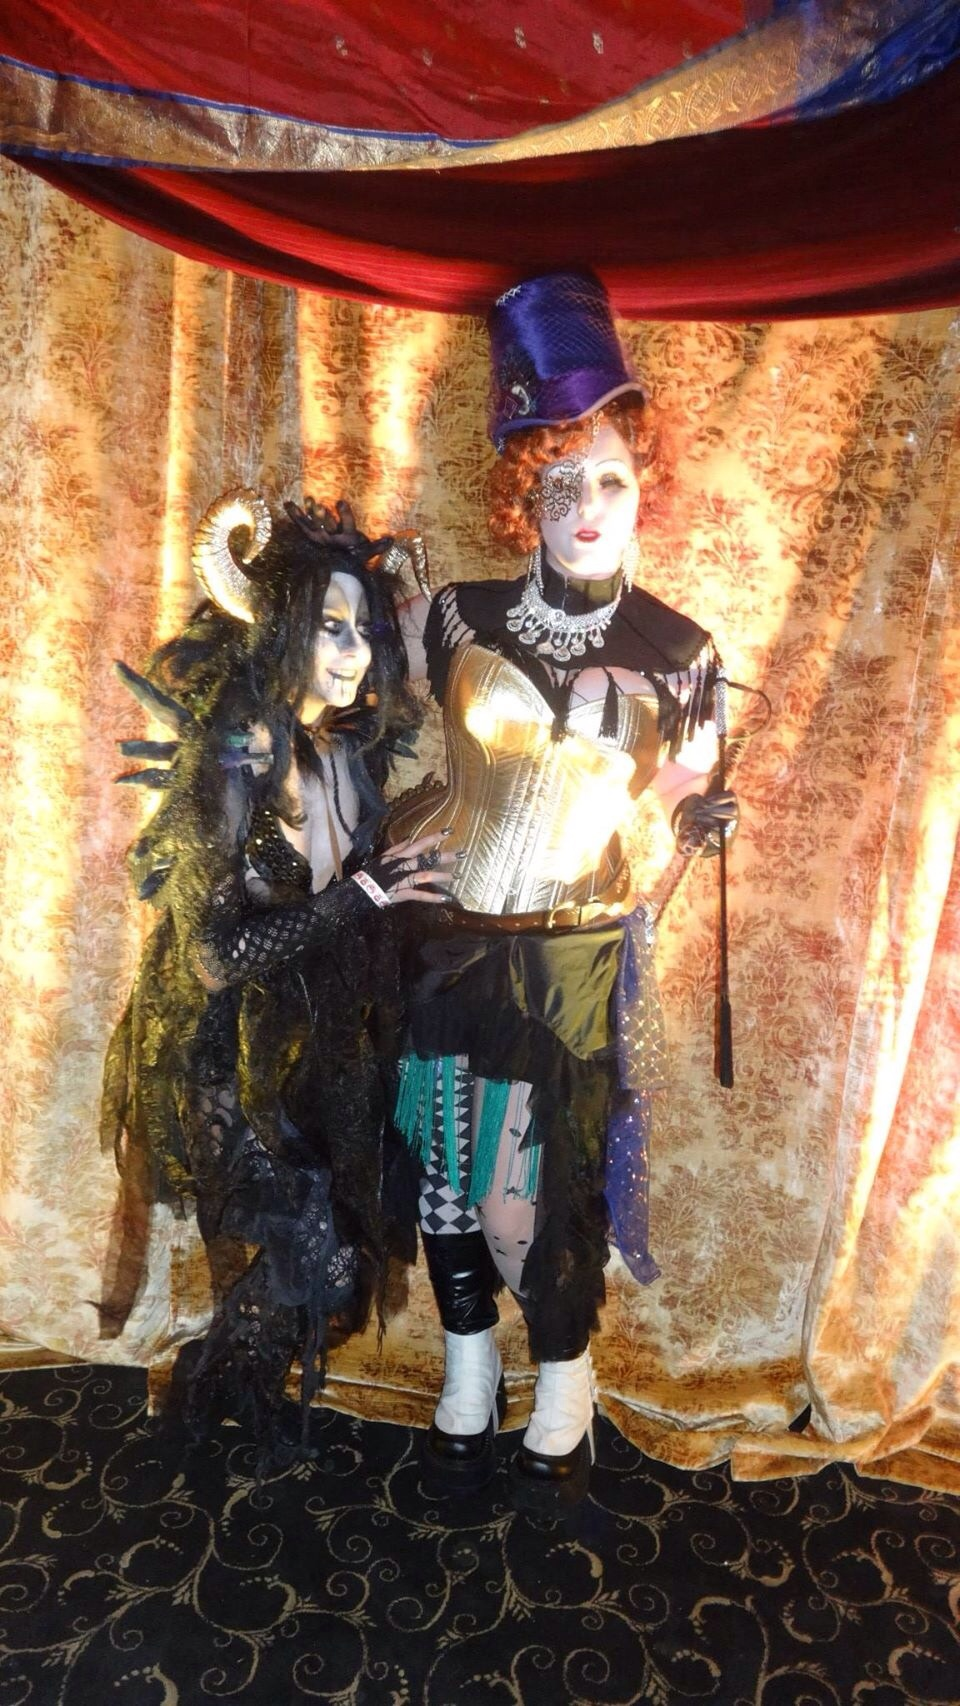 Strange denizens of the Midway appeared, like The Ringmistress and her Sumatran She-Devil